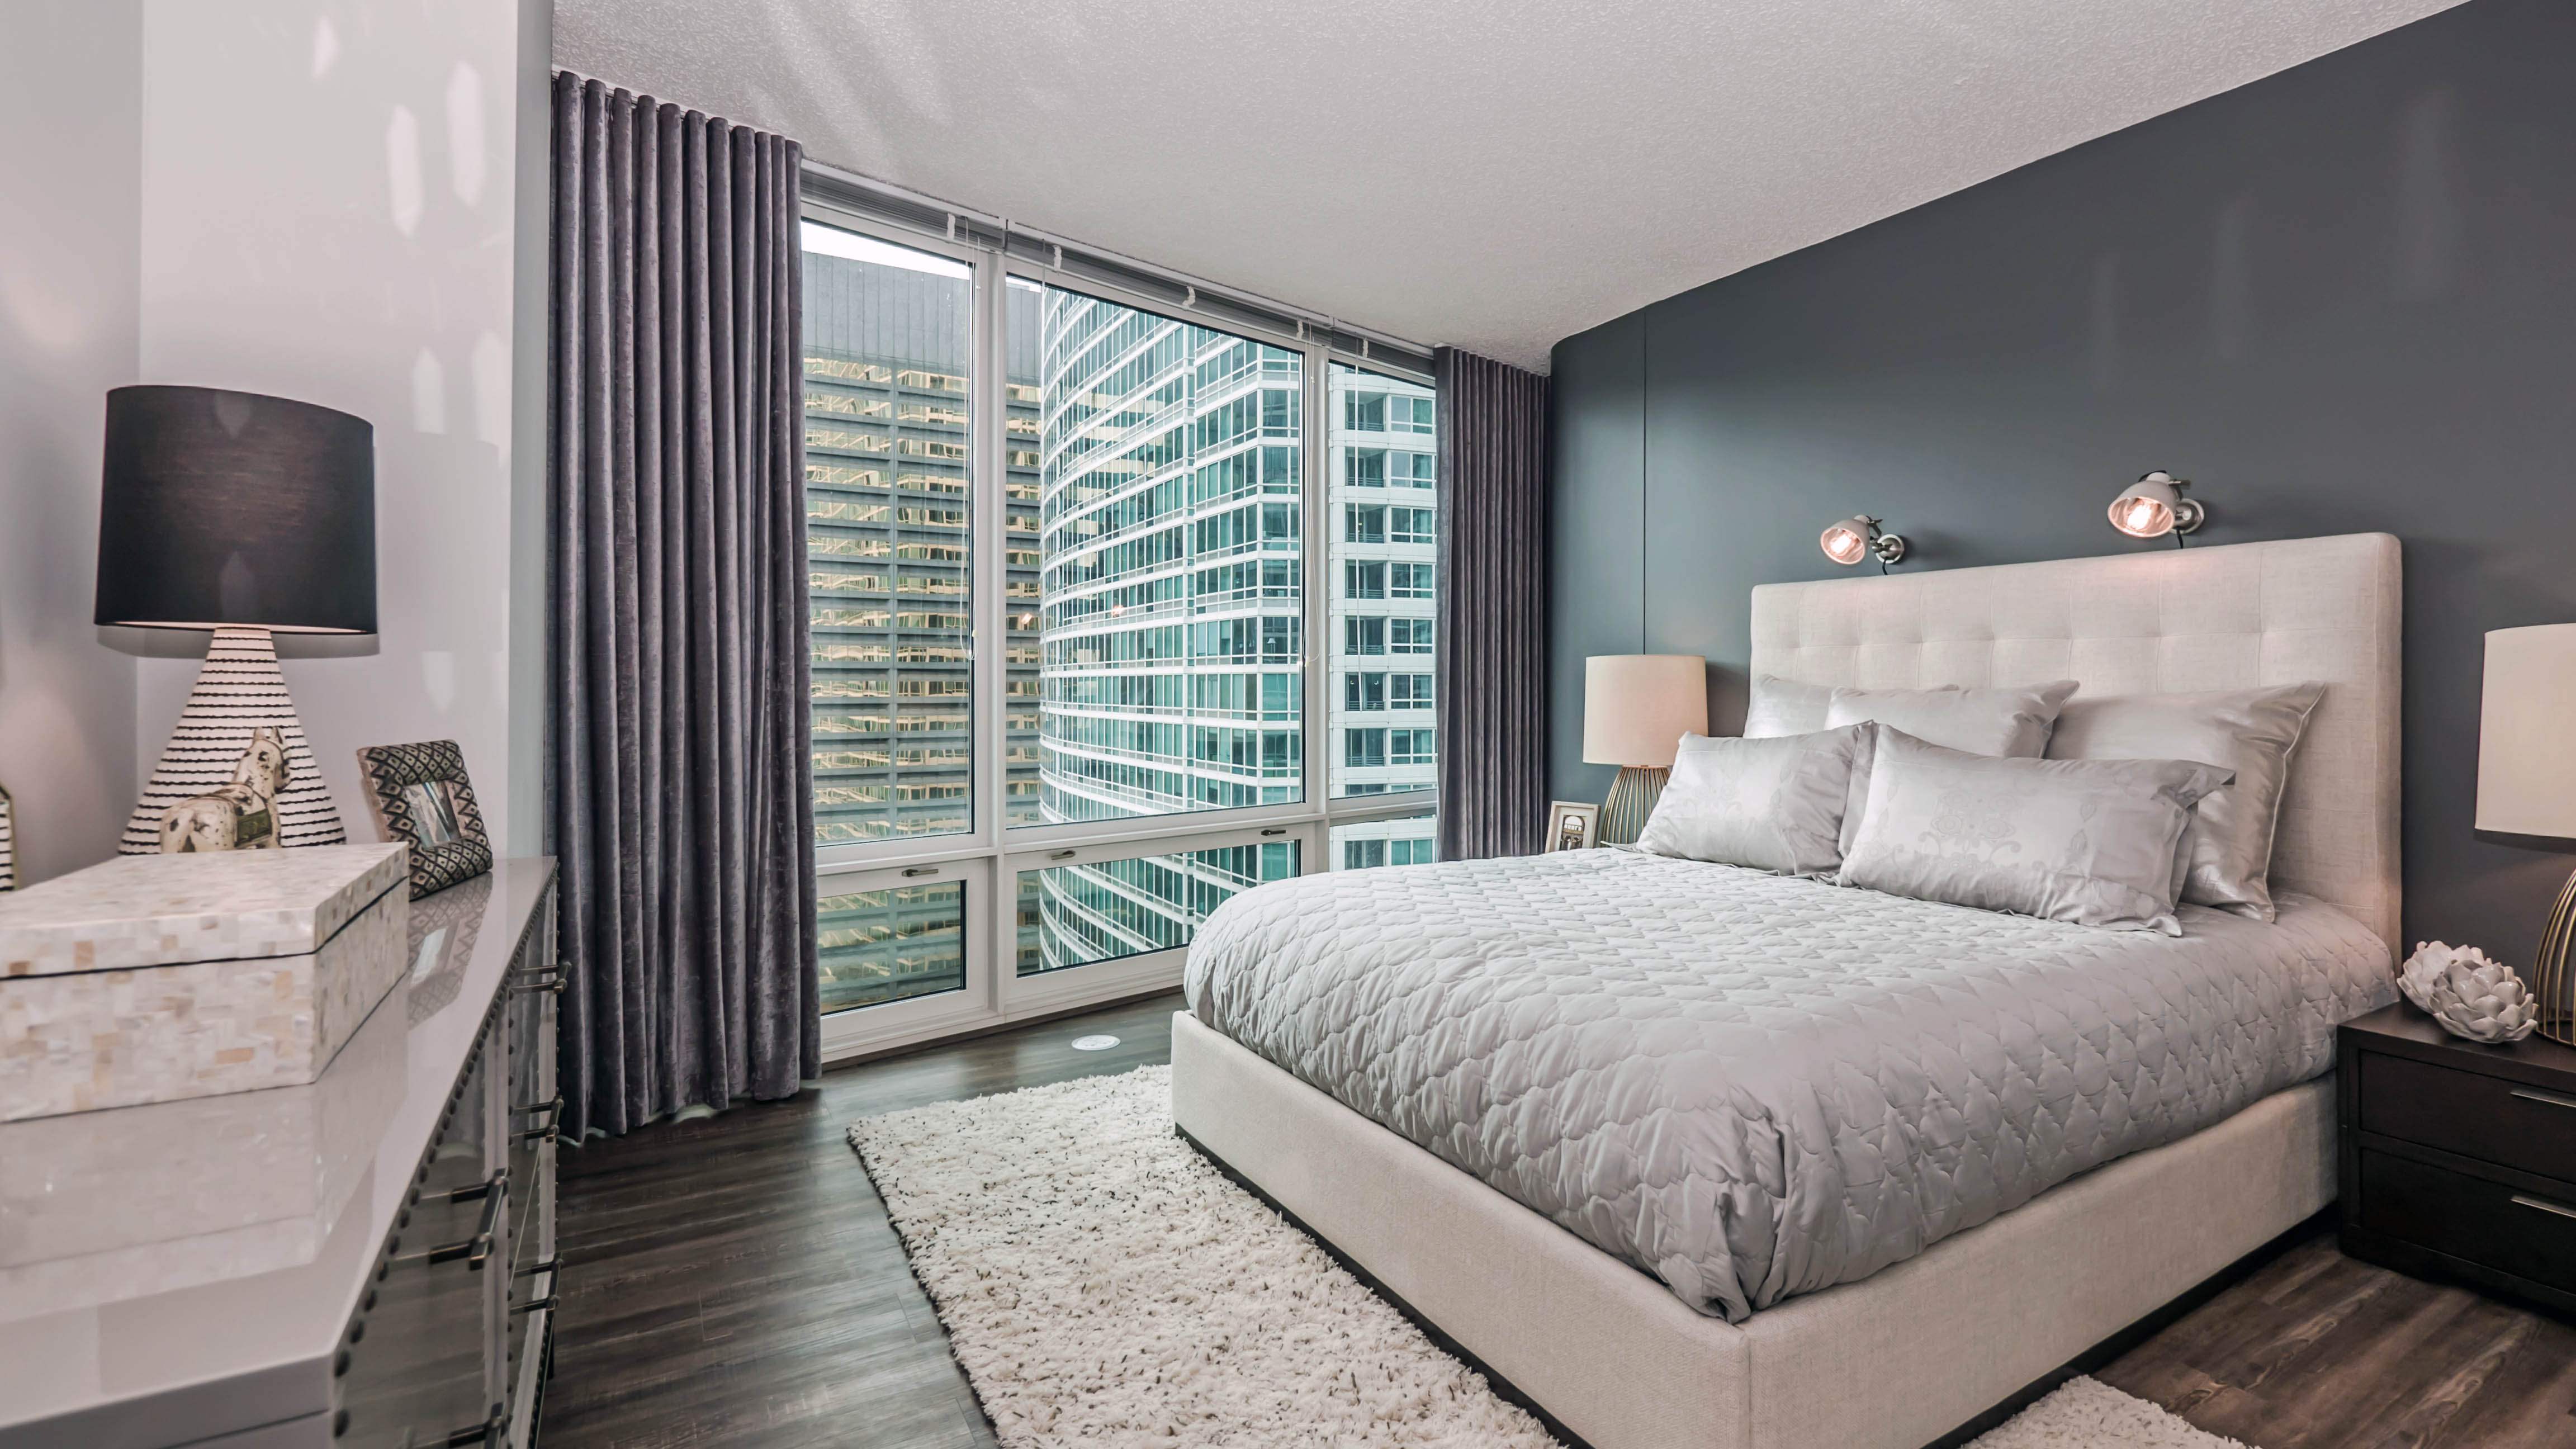 Model Bedroom Beauteous Tour A New 2Bedroom Model At Atwater In Streeterville  Yochicago Review